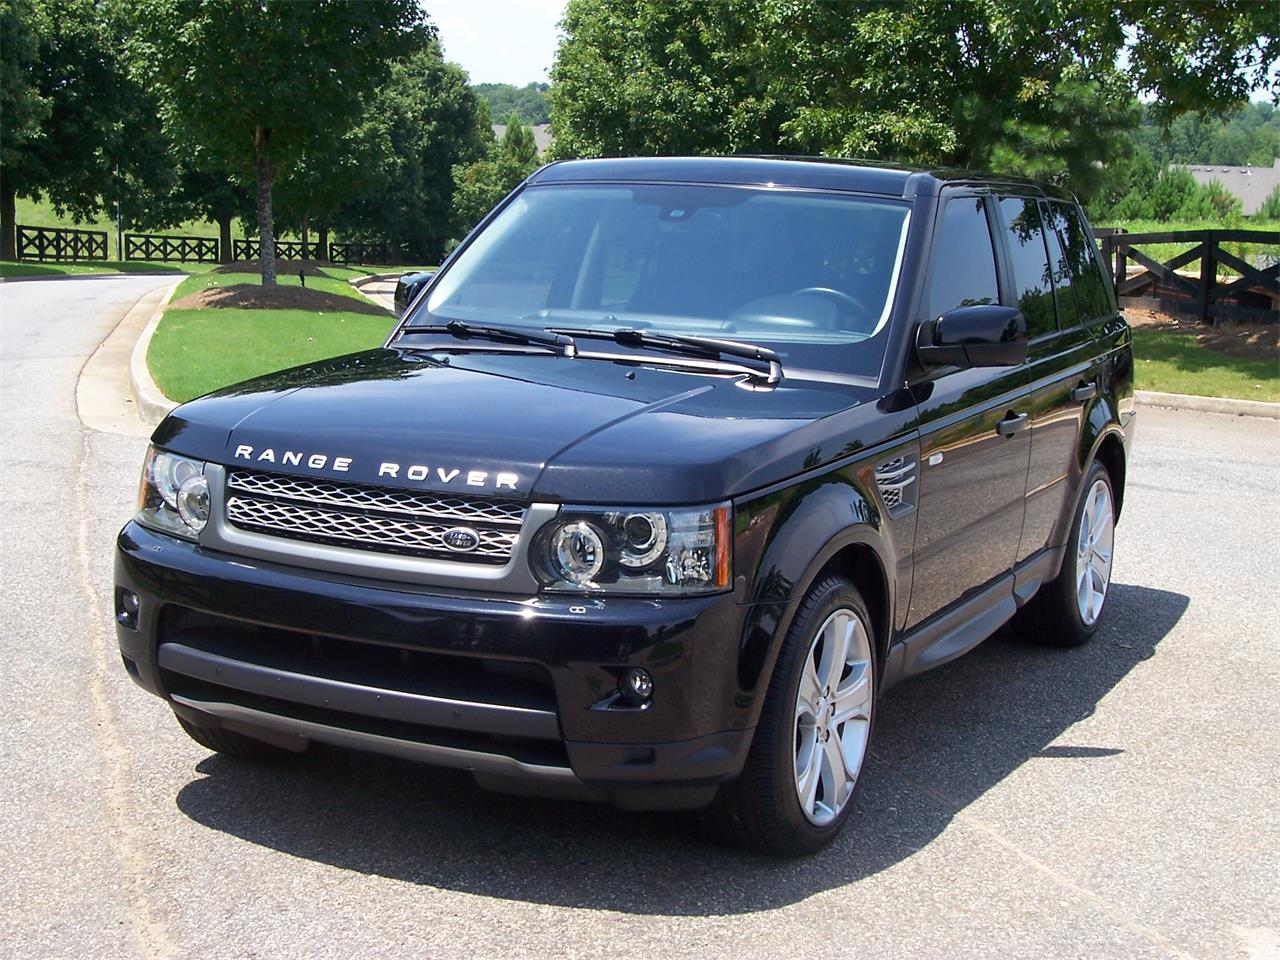 Large Picture of '11 Range Rover located in Georgia Offered by Cloud 9 Classics - LMTA